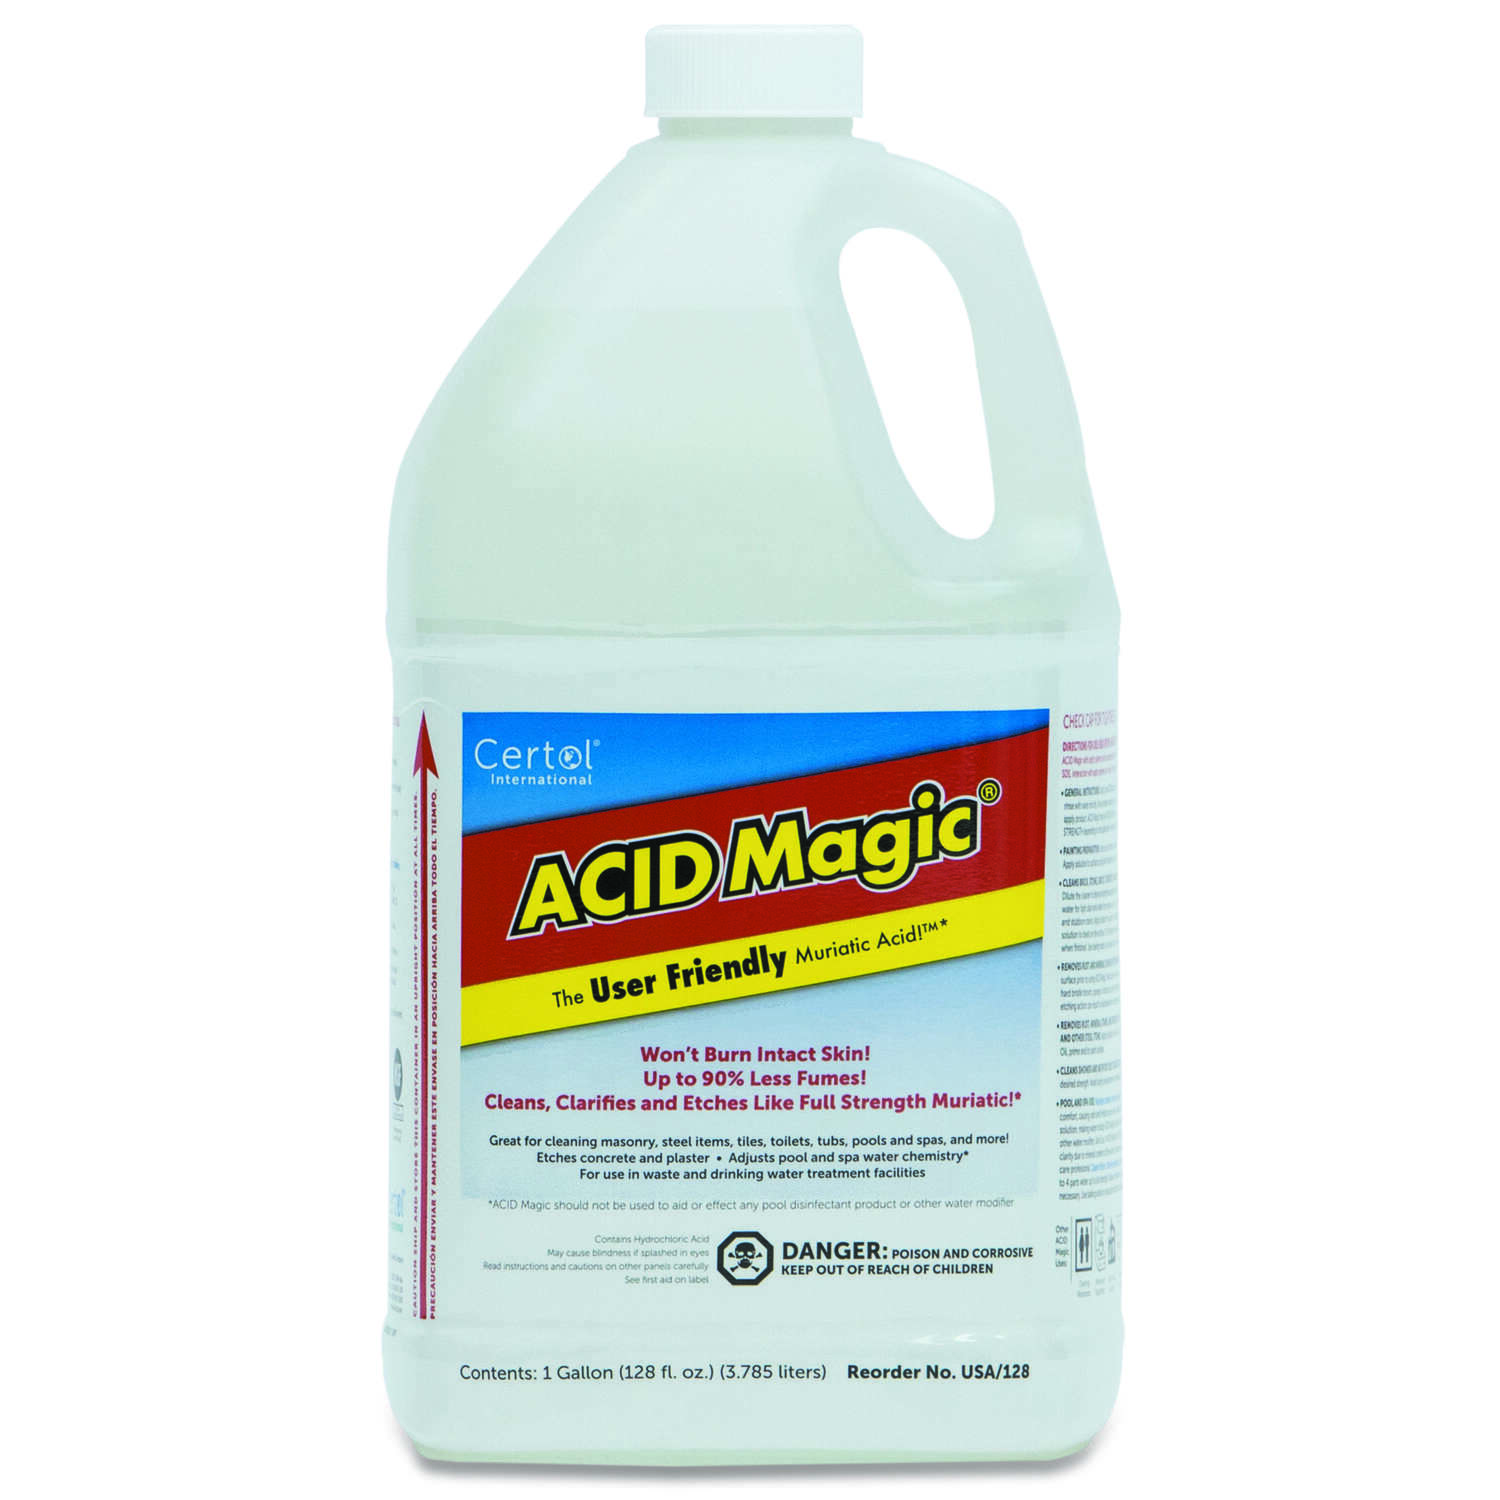 Certol International  Acid Magic  Muriatic Acid  1 gal. Liquid